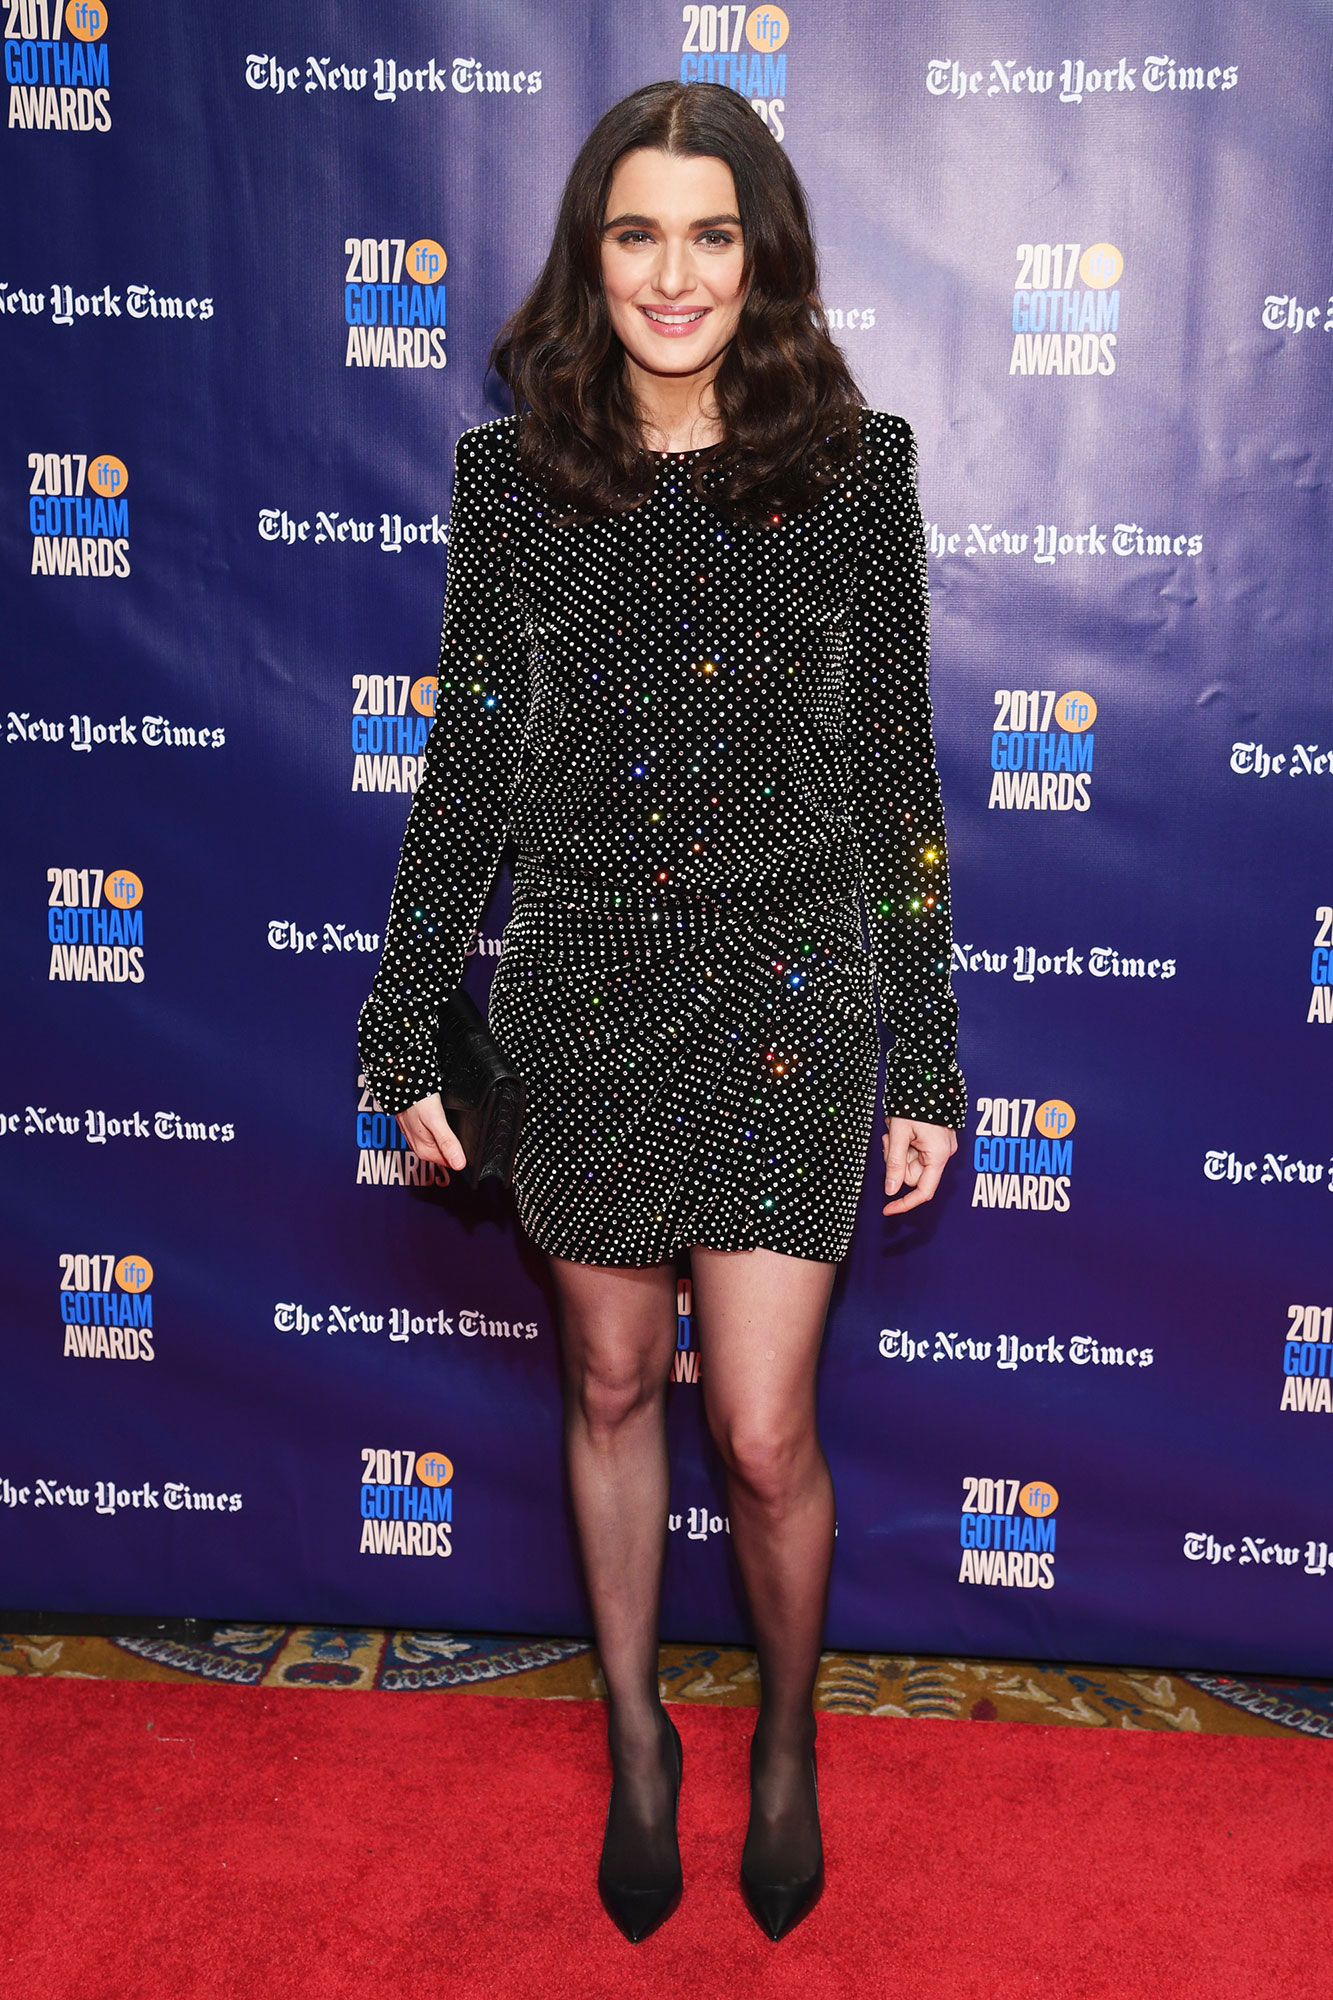 Happy Birthday, Rachel Weisz! See Her Hottest Red Carpet Looks - Opting for a mini, the actress wore a mirror-embellished Saint Laurent dress to the Gotham Independent Film Awards in 2017.